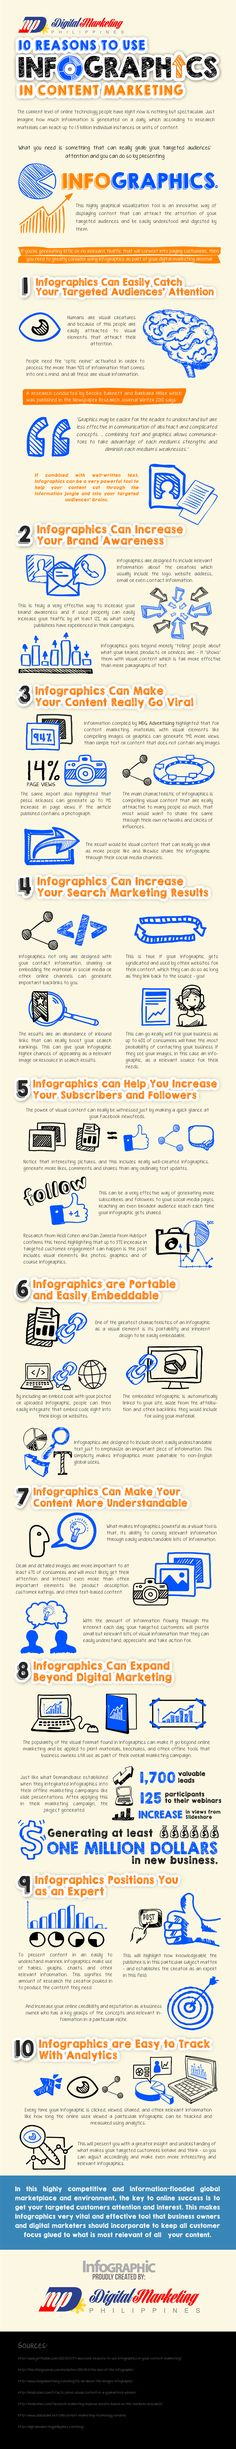 10 Reasons to use Infographics in content Marketing #infographic